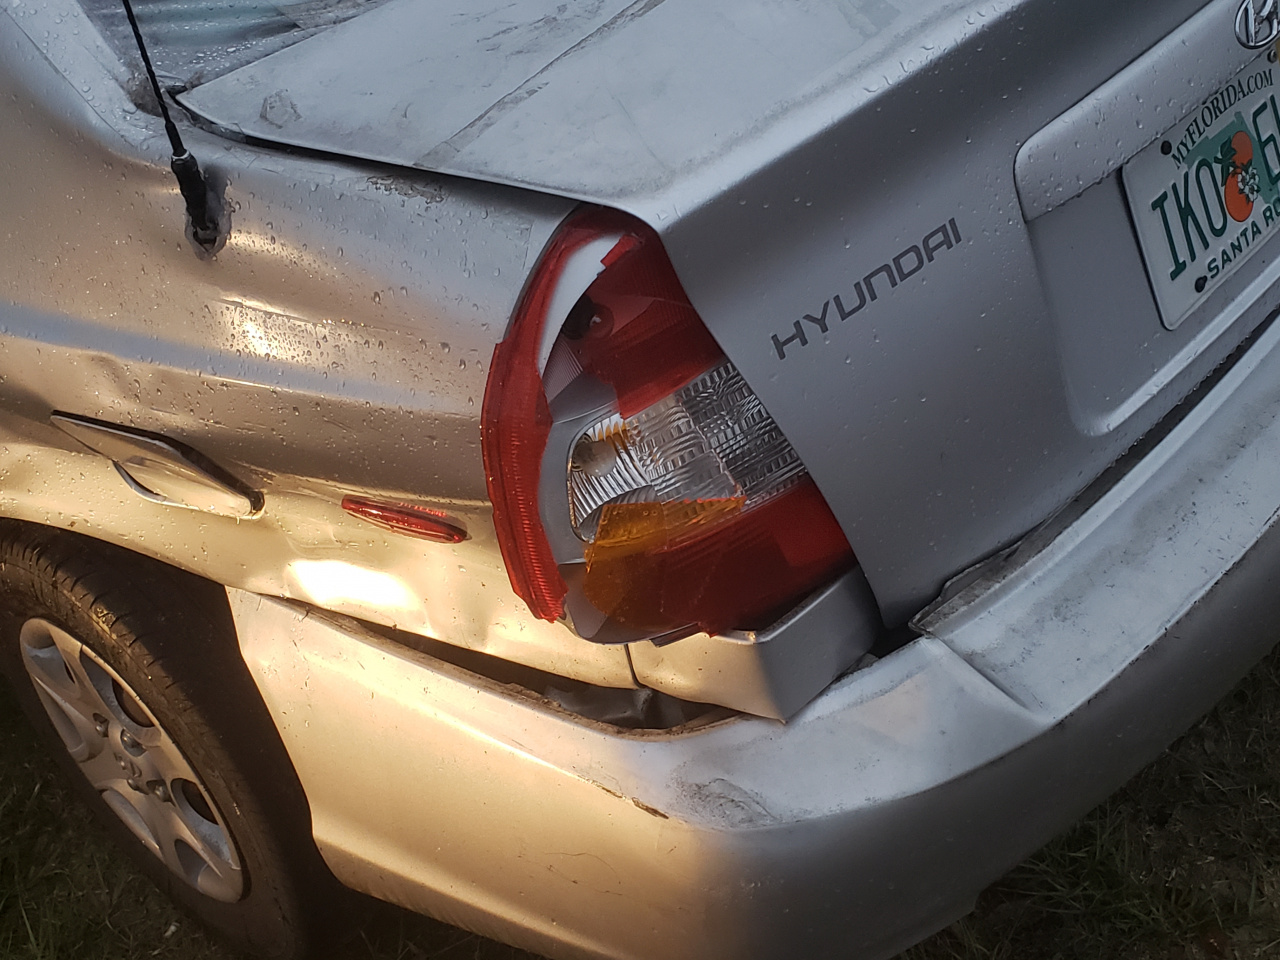 Car accident question, looking for advice.-20190509_190235-jpg